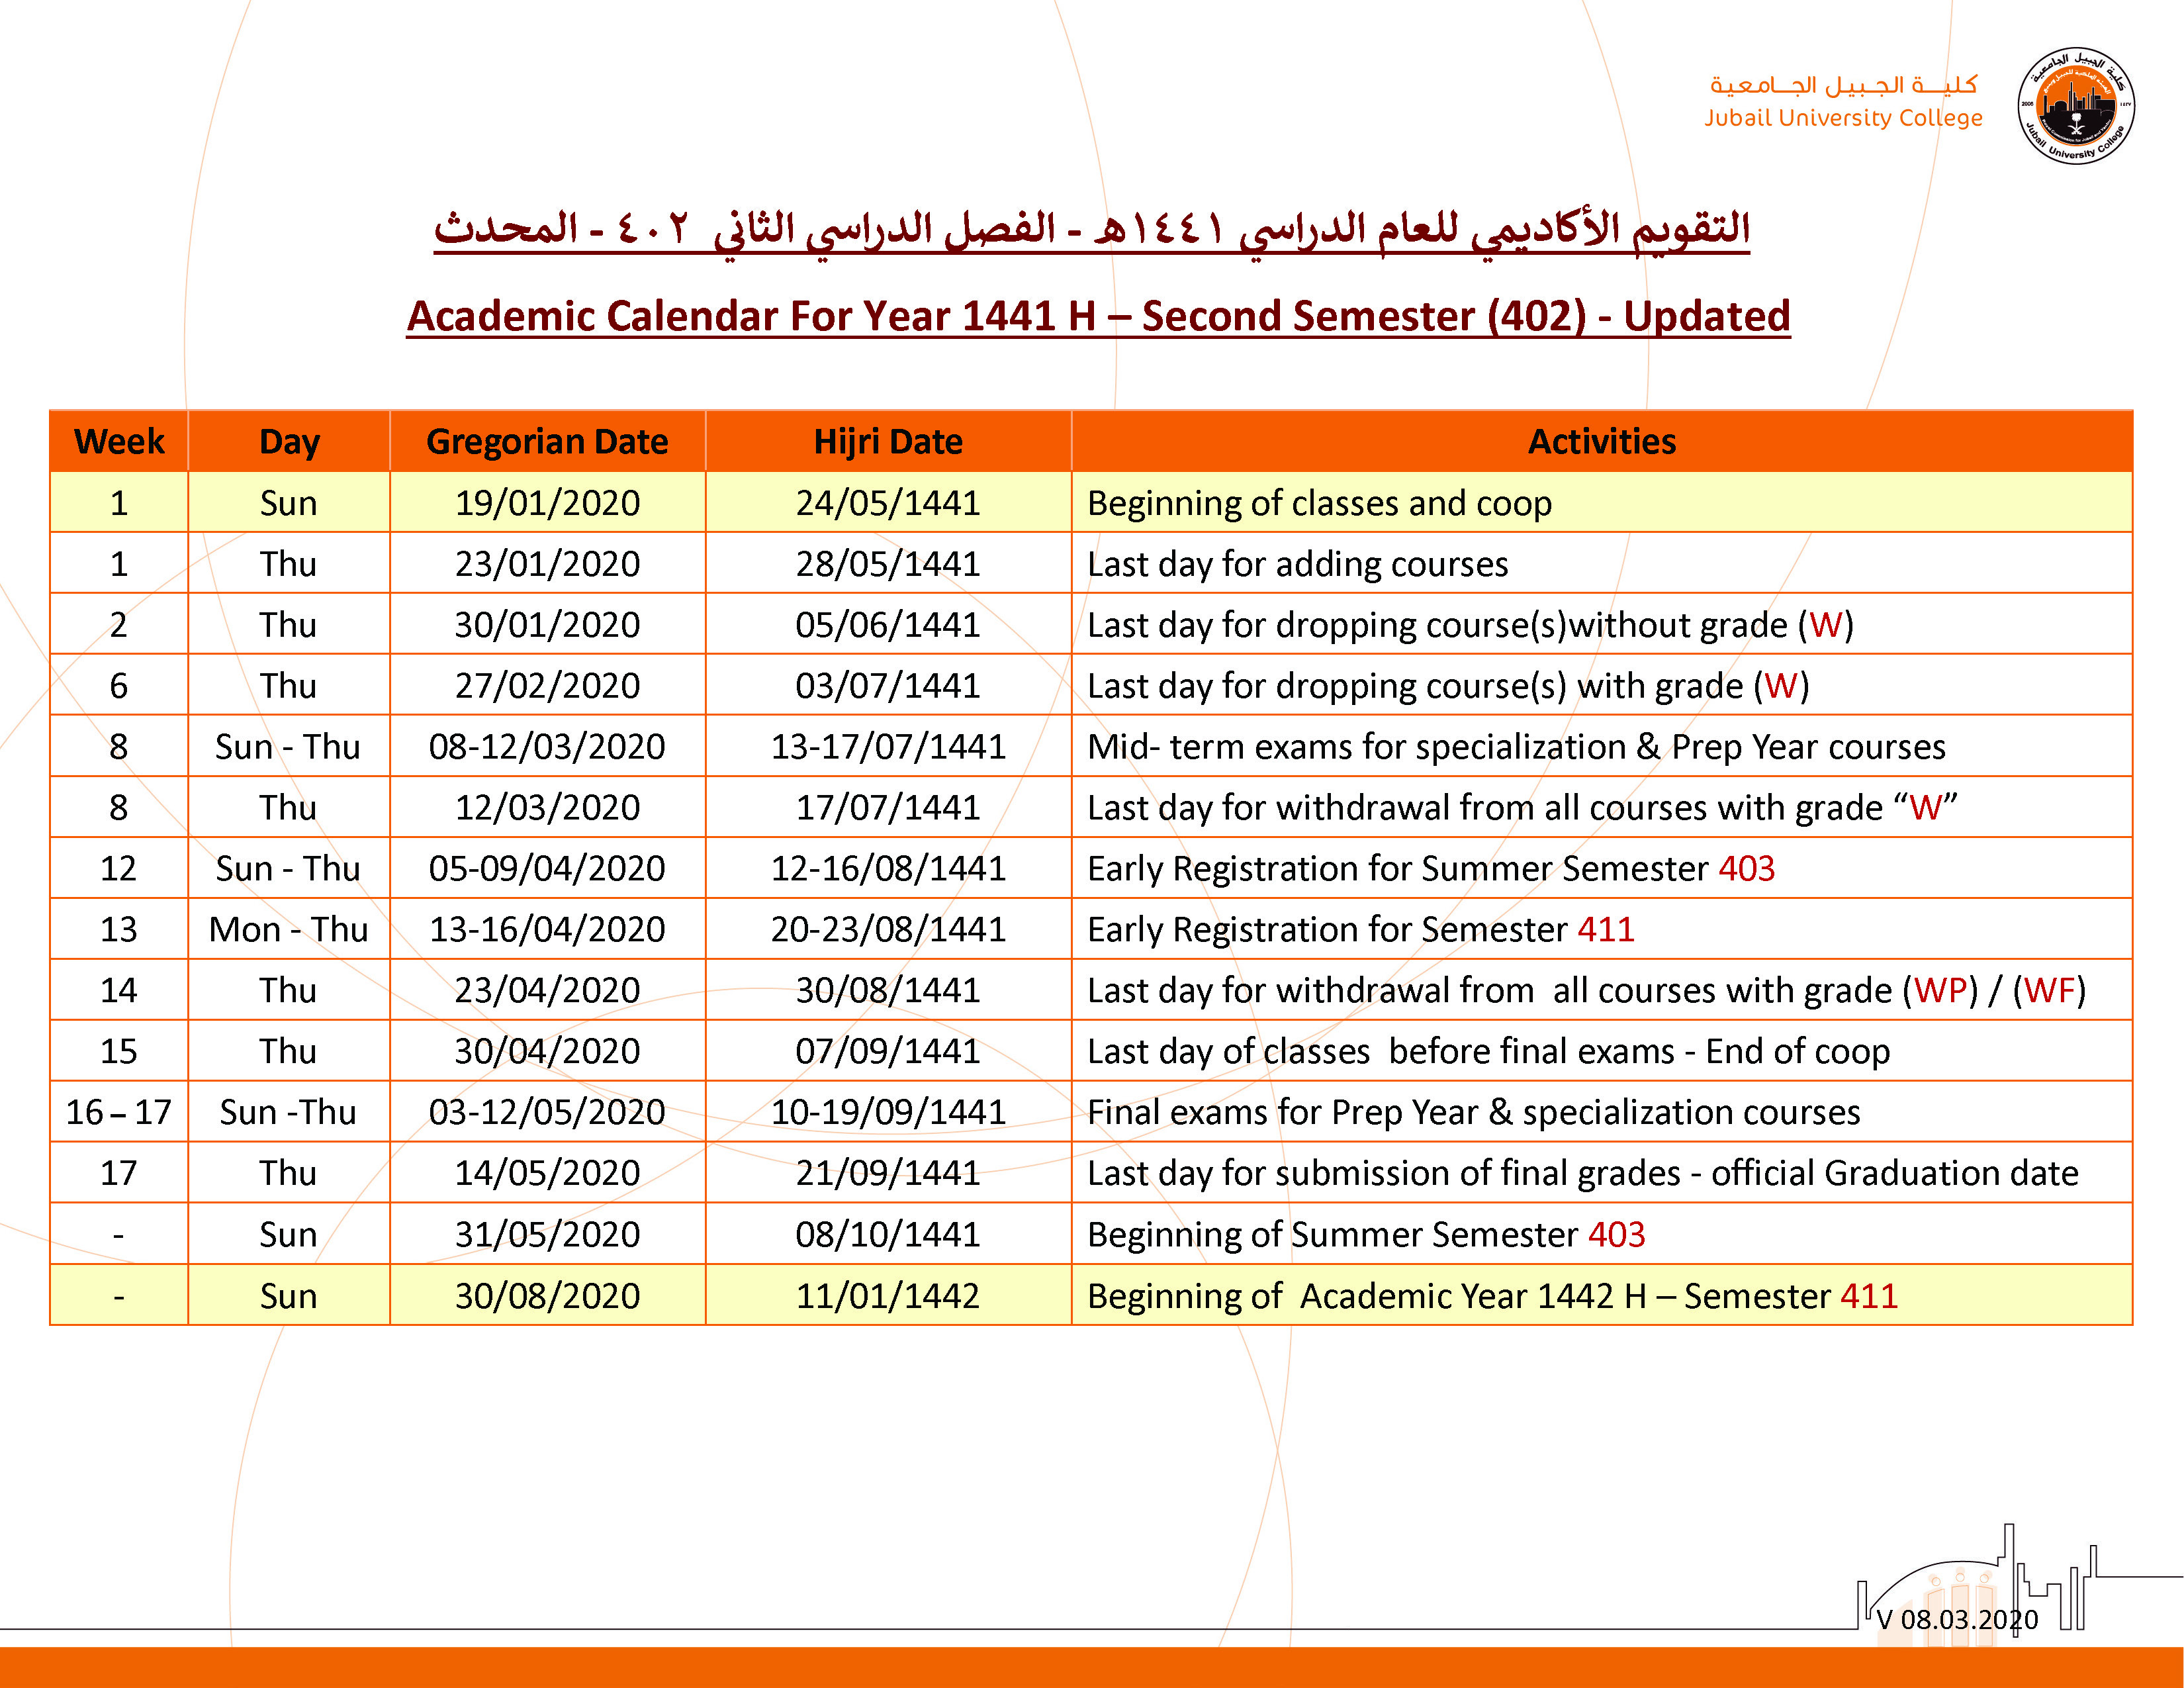 Updated Academic Calendar 402.jpg